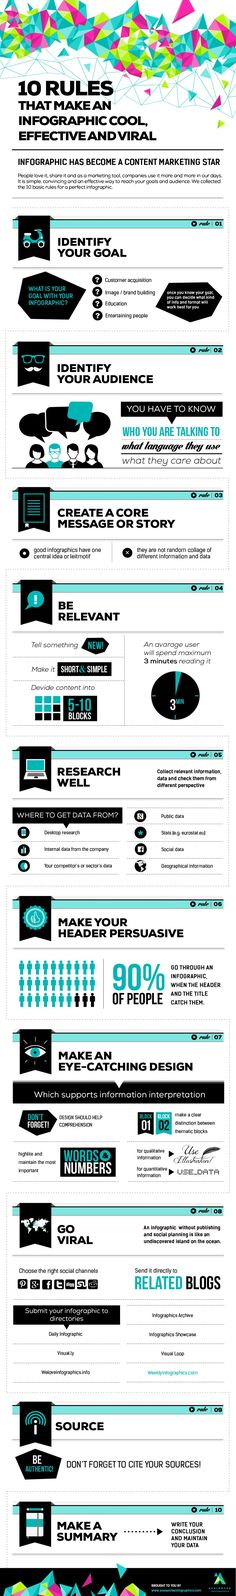 10 Rules about infographic